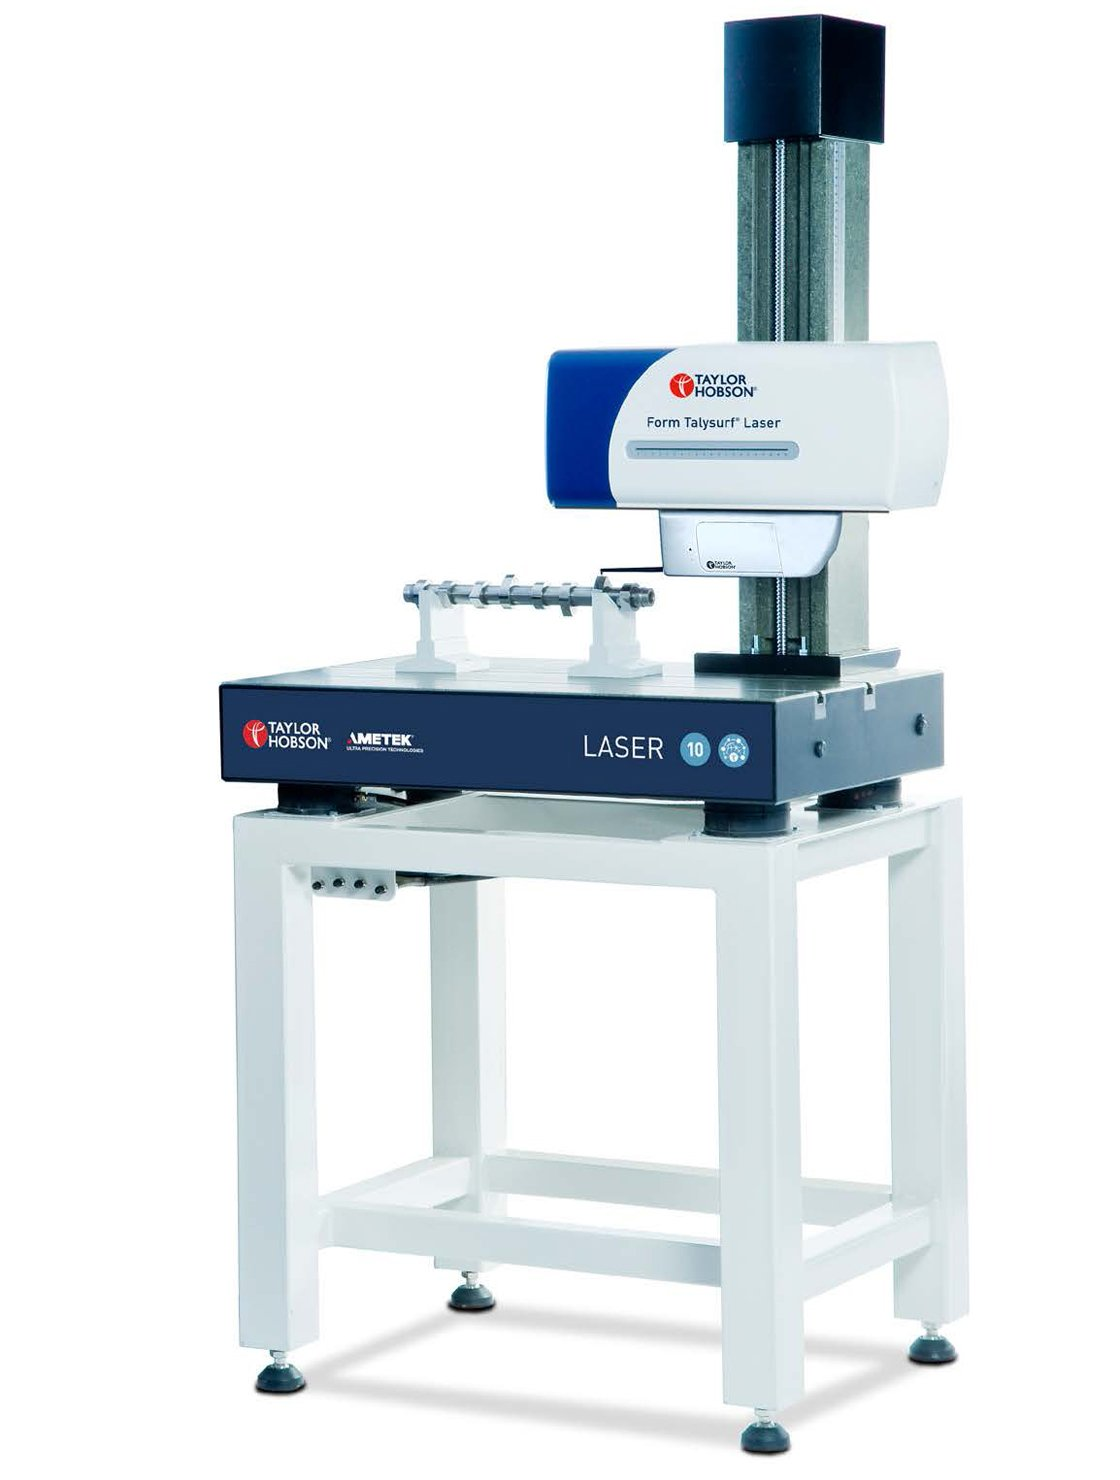 Form Talysurf LASER system for surface finish, form and contour measurement